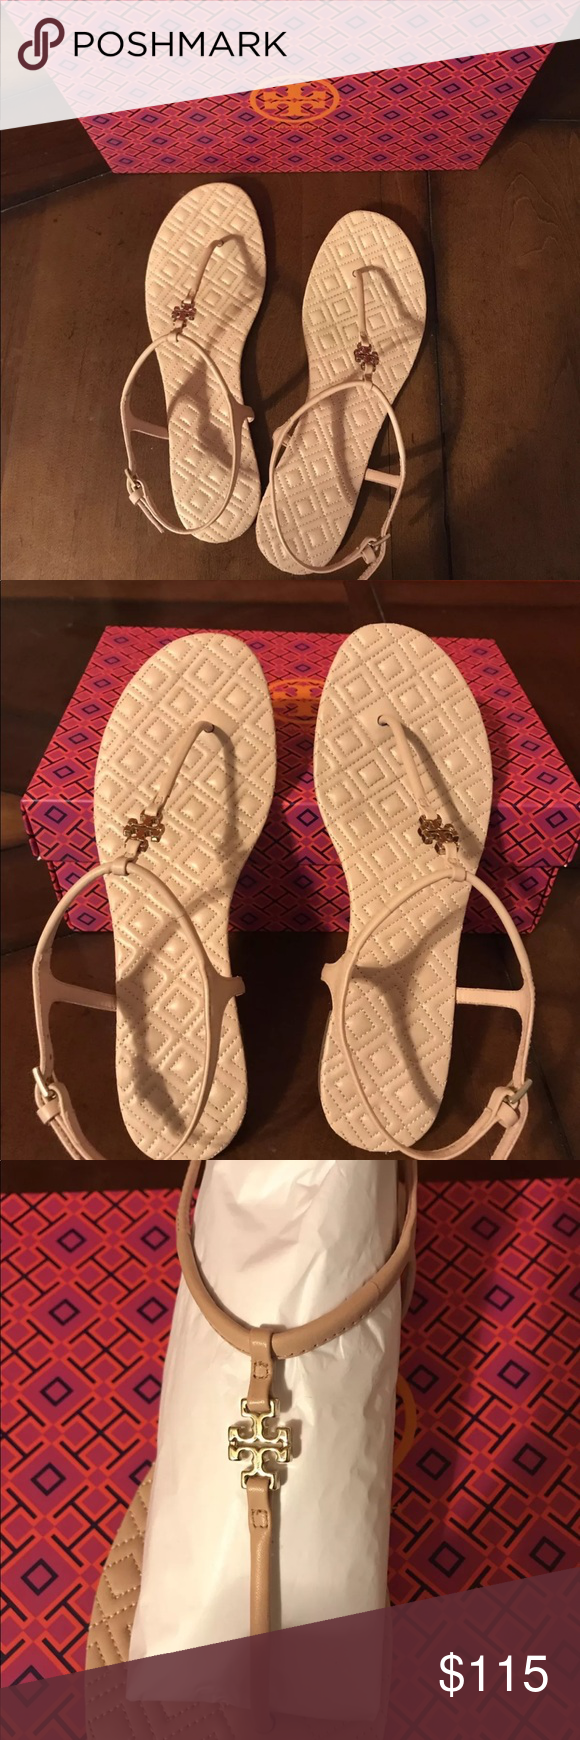 b2f255080e307 Tory Burch Marion Quilted Leather T-Strap Sandal Tory Burch Quilted T-strap  And TB Dust Bag Size  8.5 Clay Pink Sandals These sandals are very  beautiful and ...